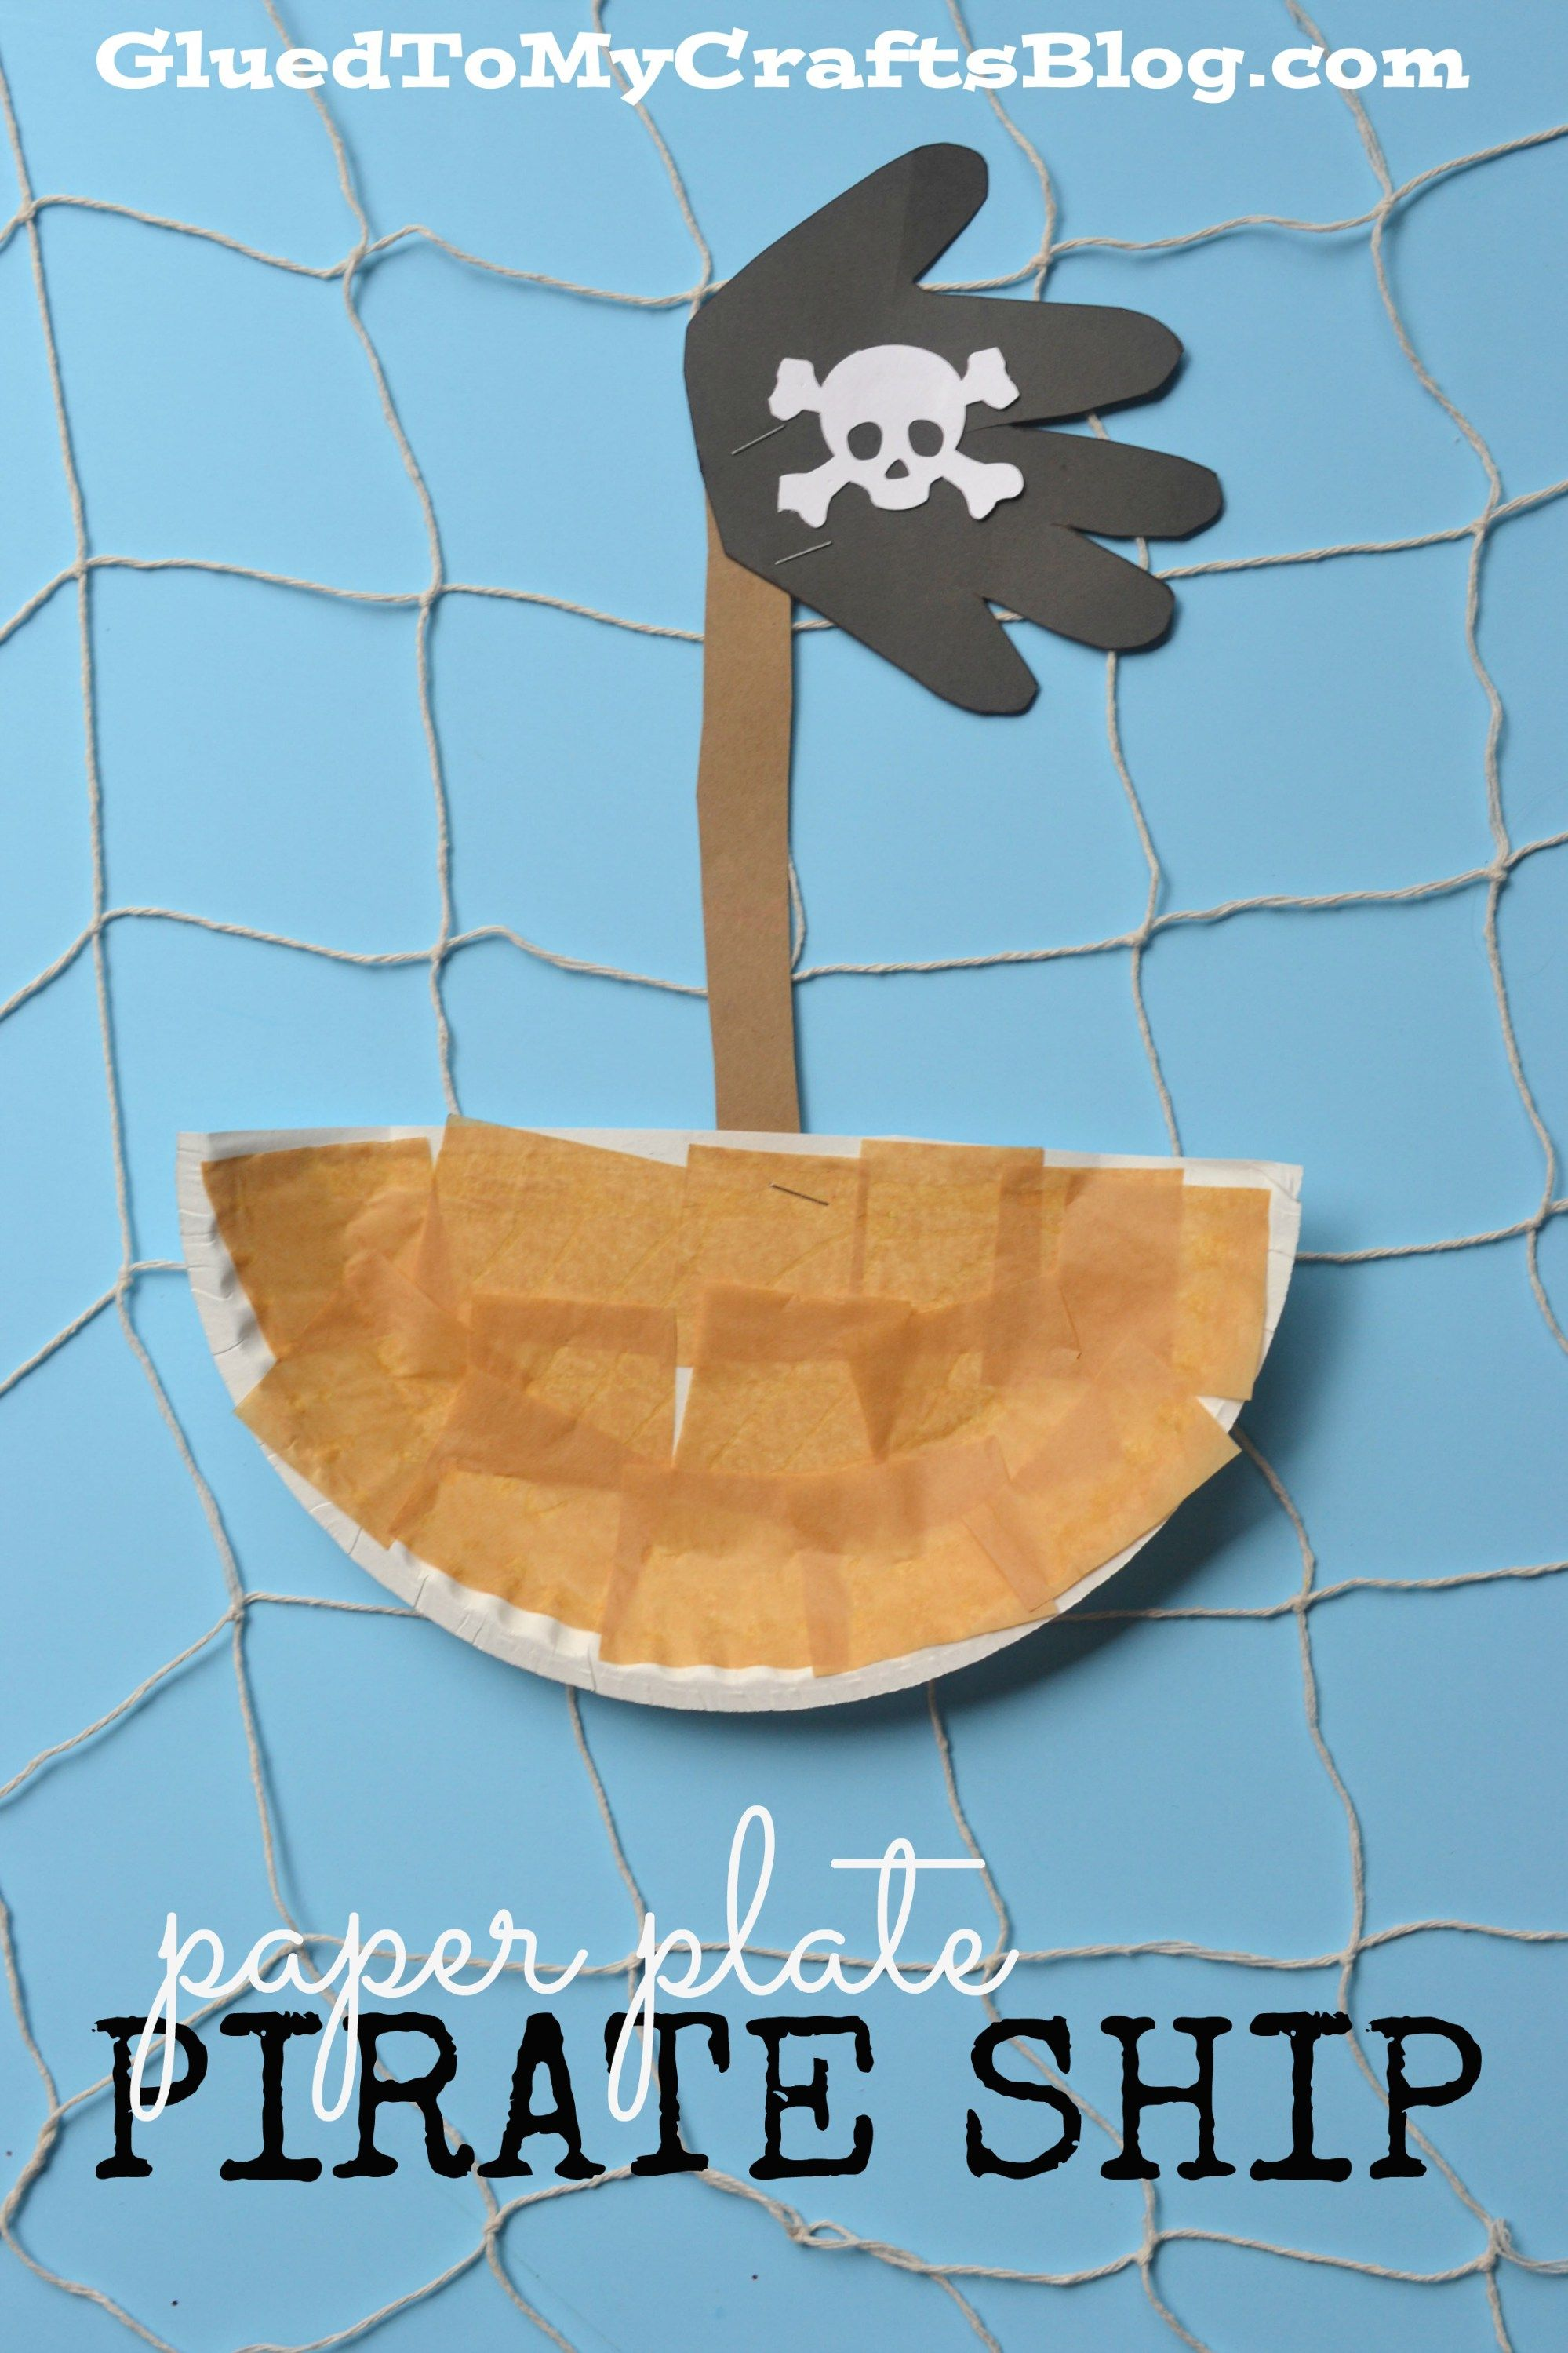 Popsicle Stick Pirate Ship - Kid Craft | Pinterest | Pirate ships ...